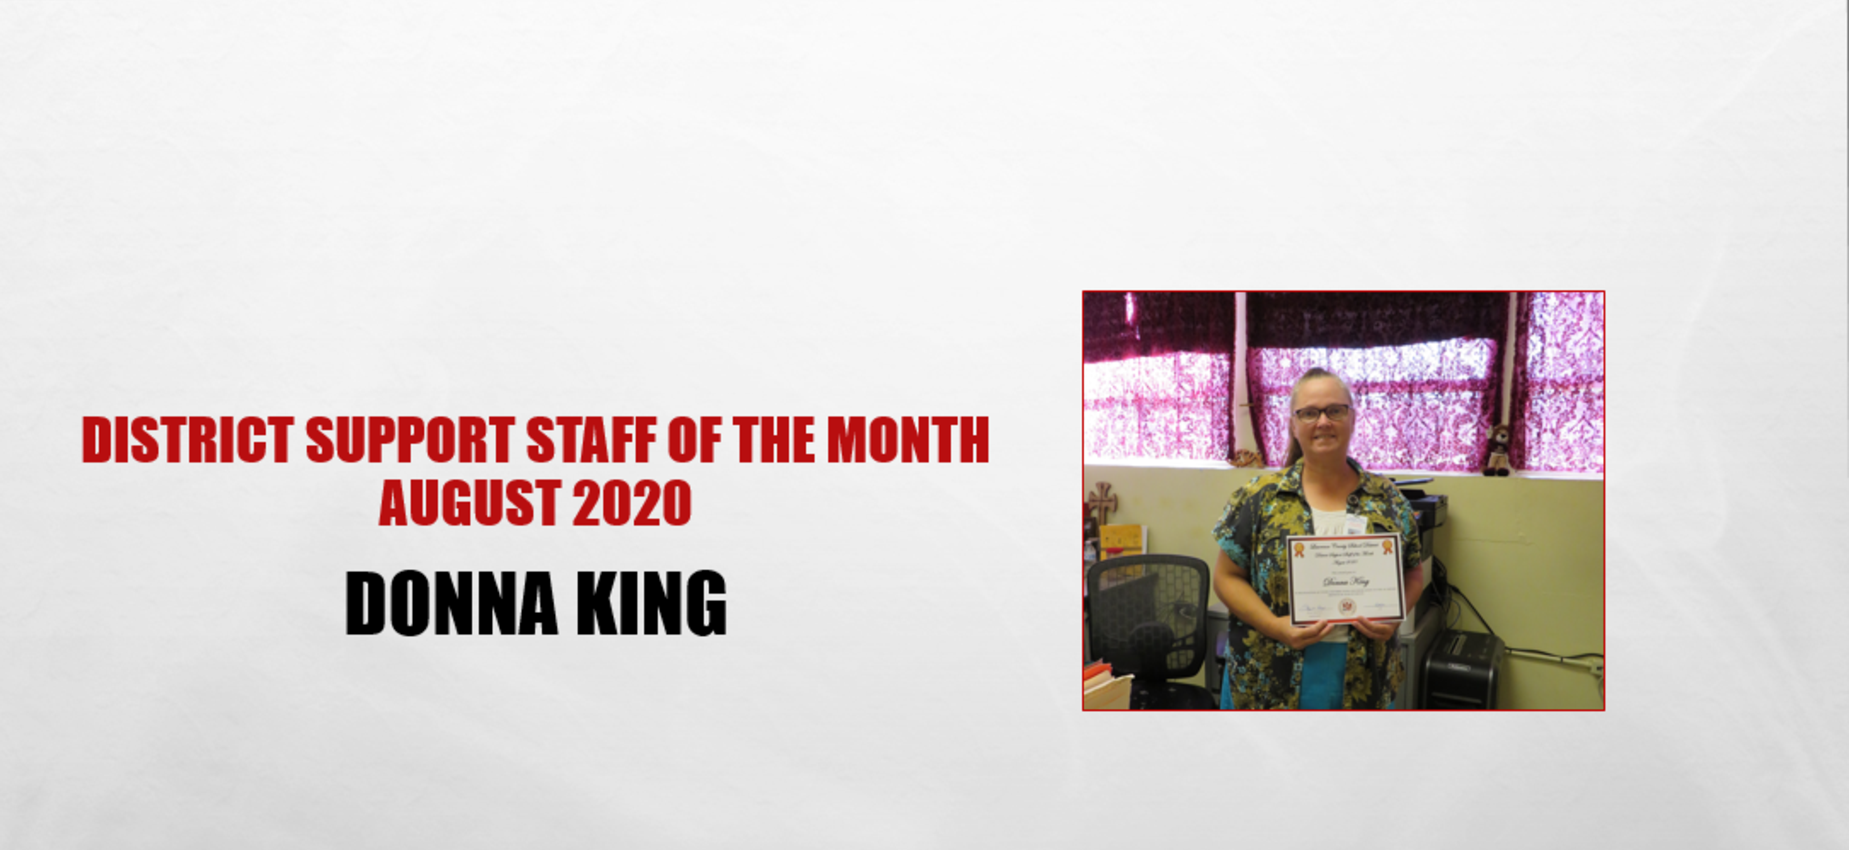 Donna King Support Staff of the Month August 2020